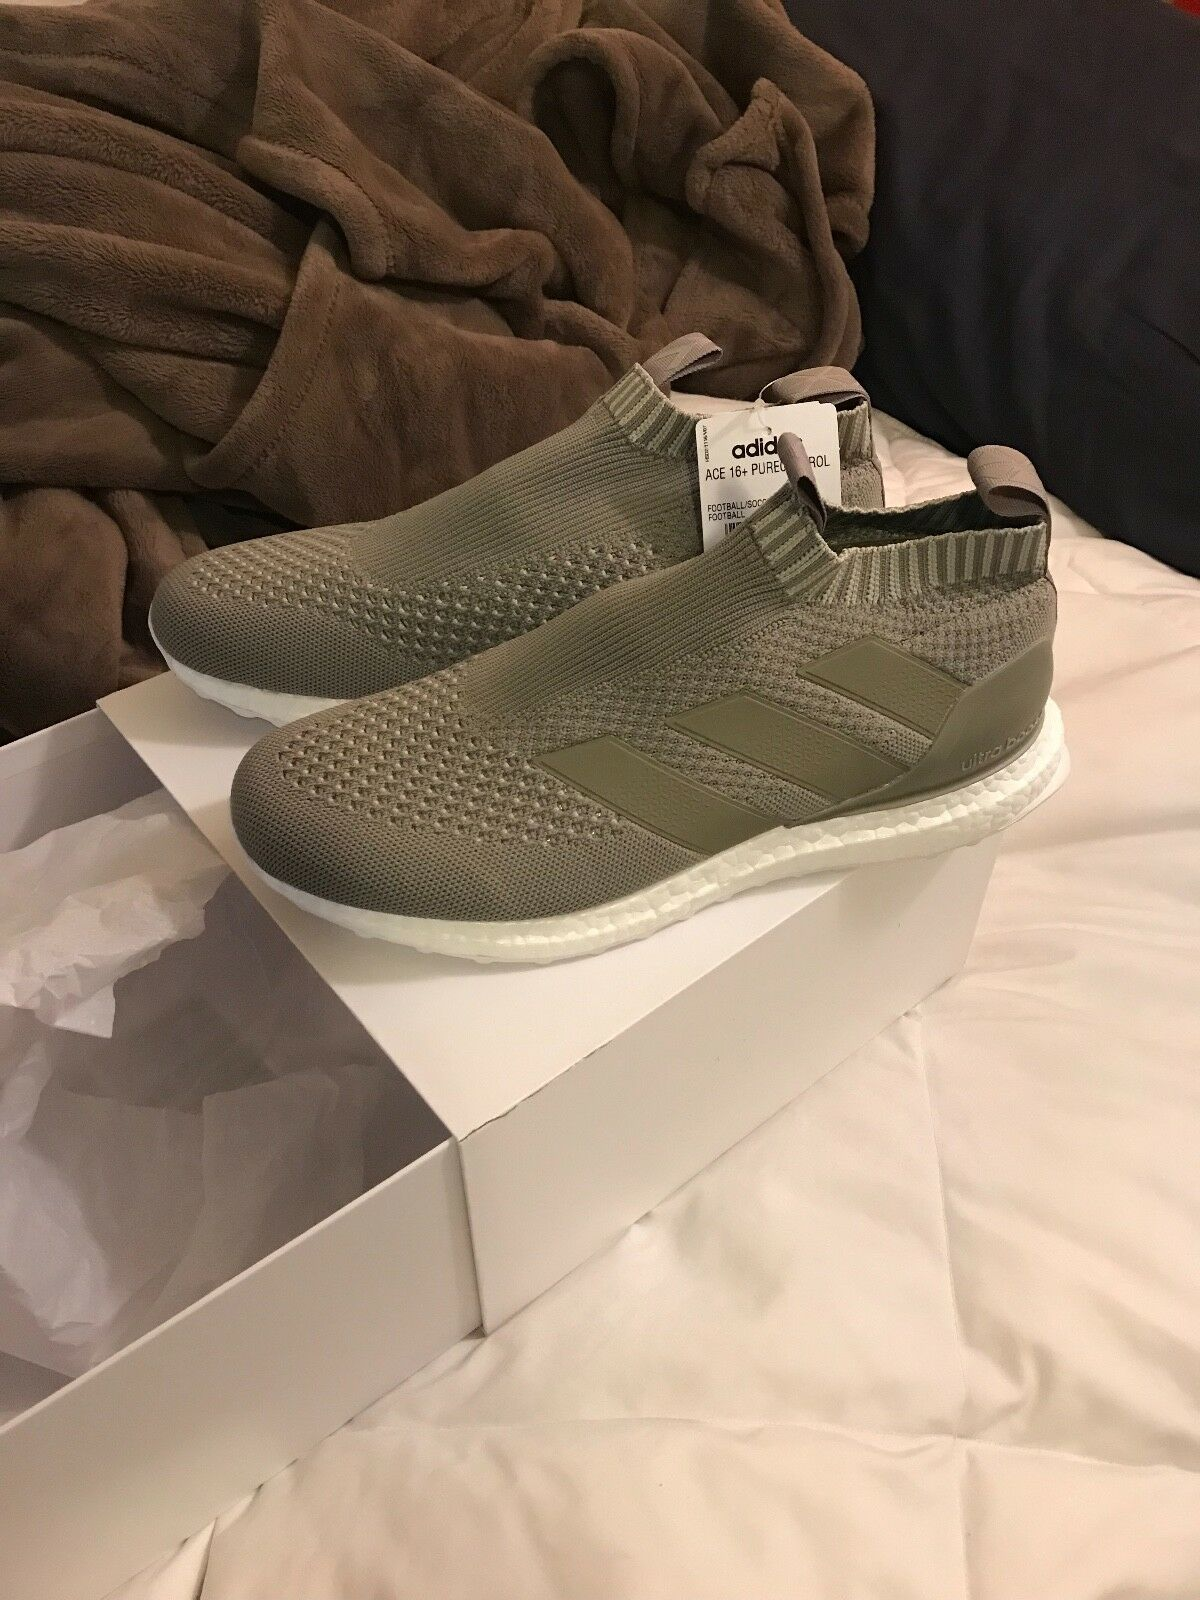 adidas ace 16 purecontrol ultra boost Comfortable